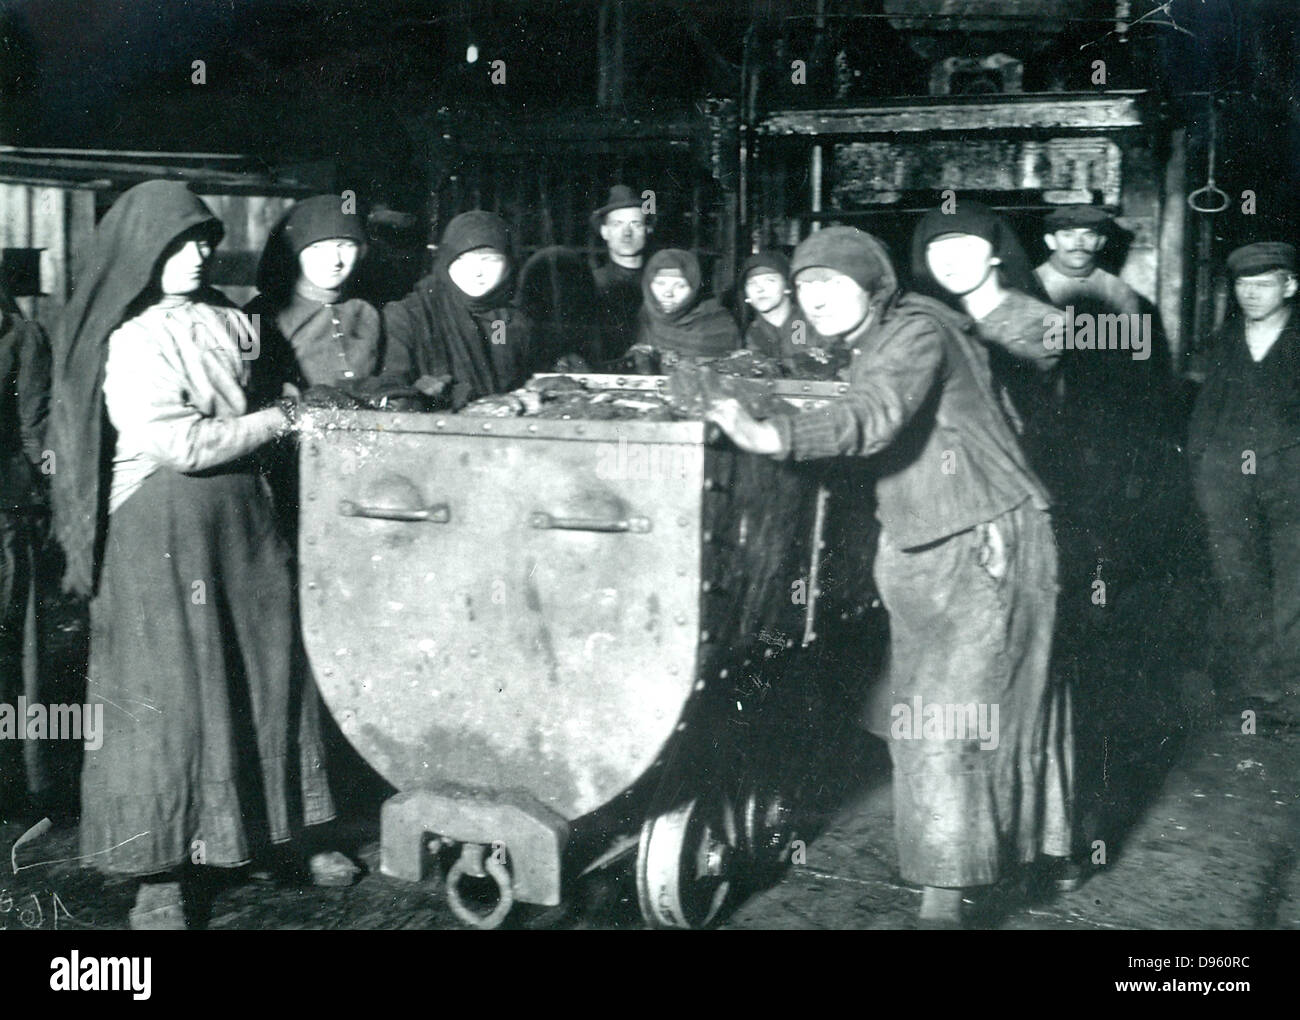 Slave labourers at a Polish Mine in Nazi occupied Silesia c1941. - Stock Image